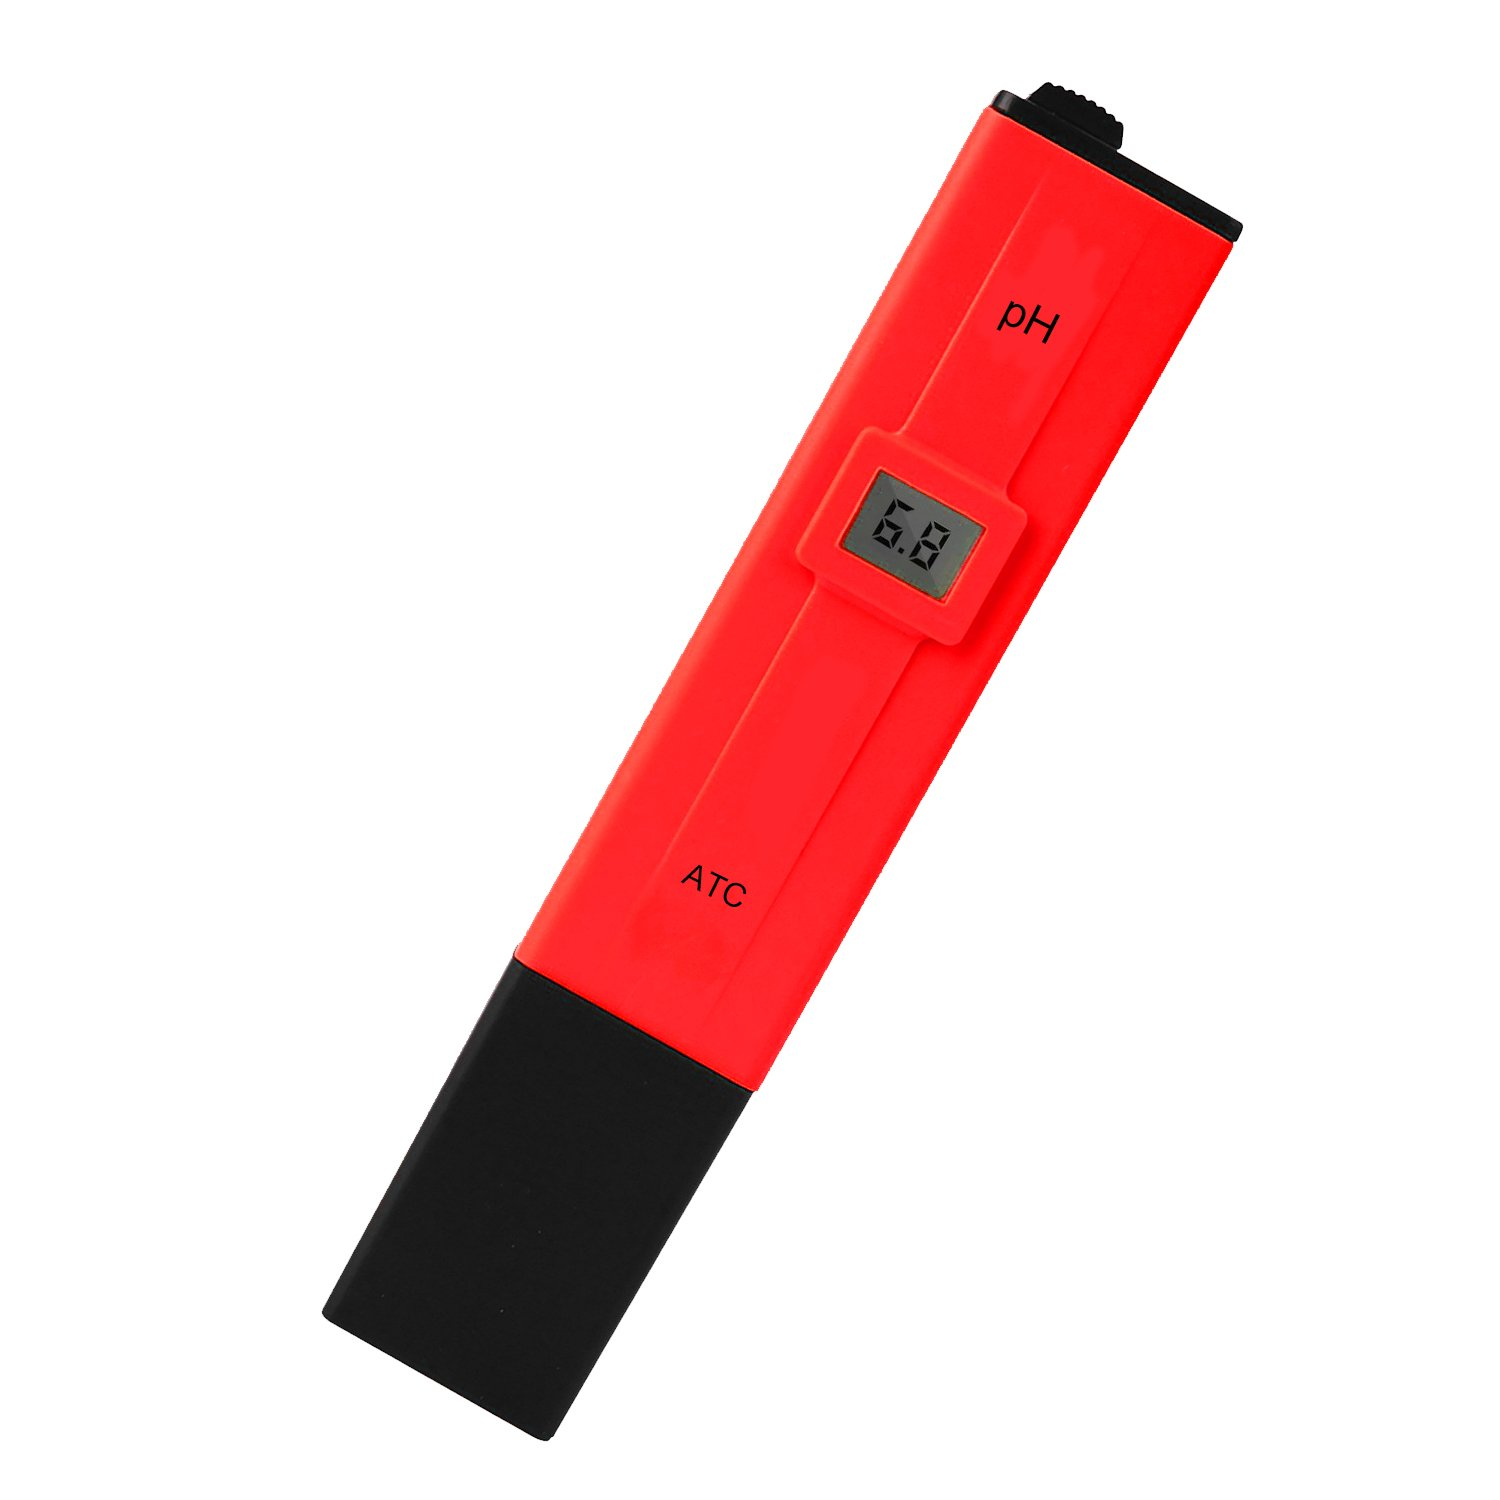 Digital PH Meter, 0.1 PH High Accuracy Water Quality Tester Pen Portable Pocket Size with 0-14 PH Measurement Range for Household Drinking Water, Aquariums, Swimming Spas(Red)